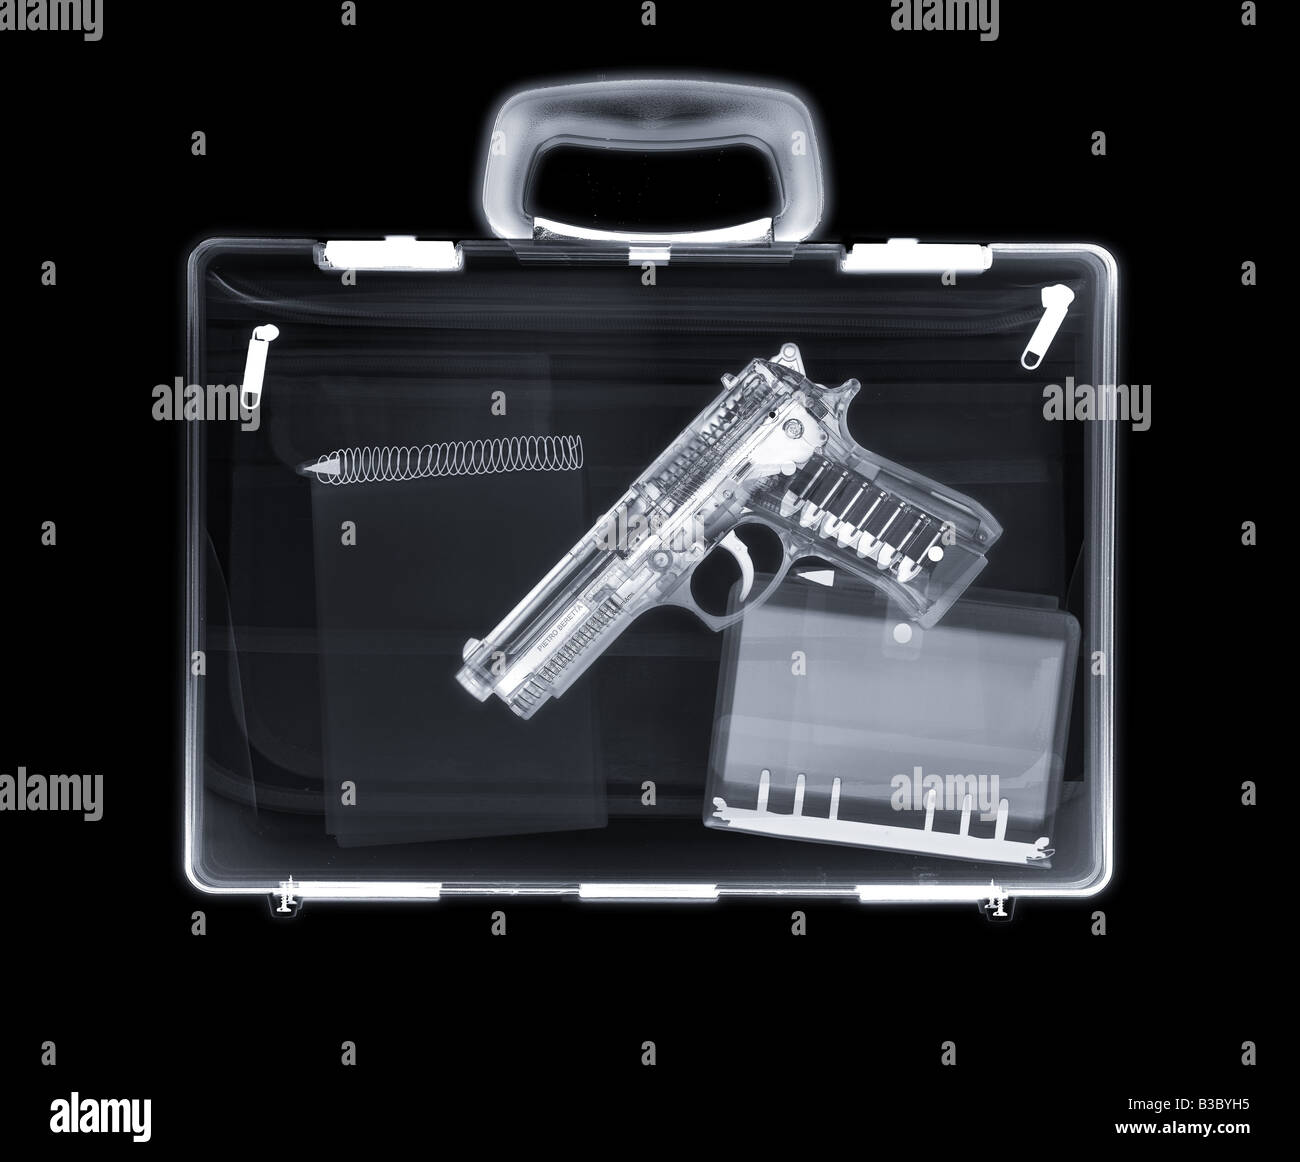 X-ray of a bag containing a gun, filofax and notepad - Stock Image